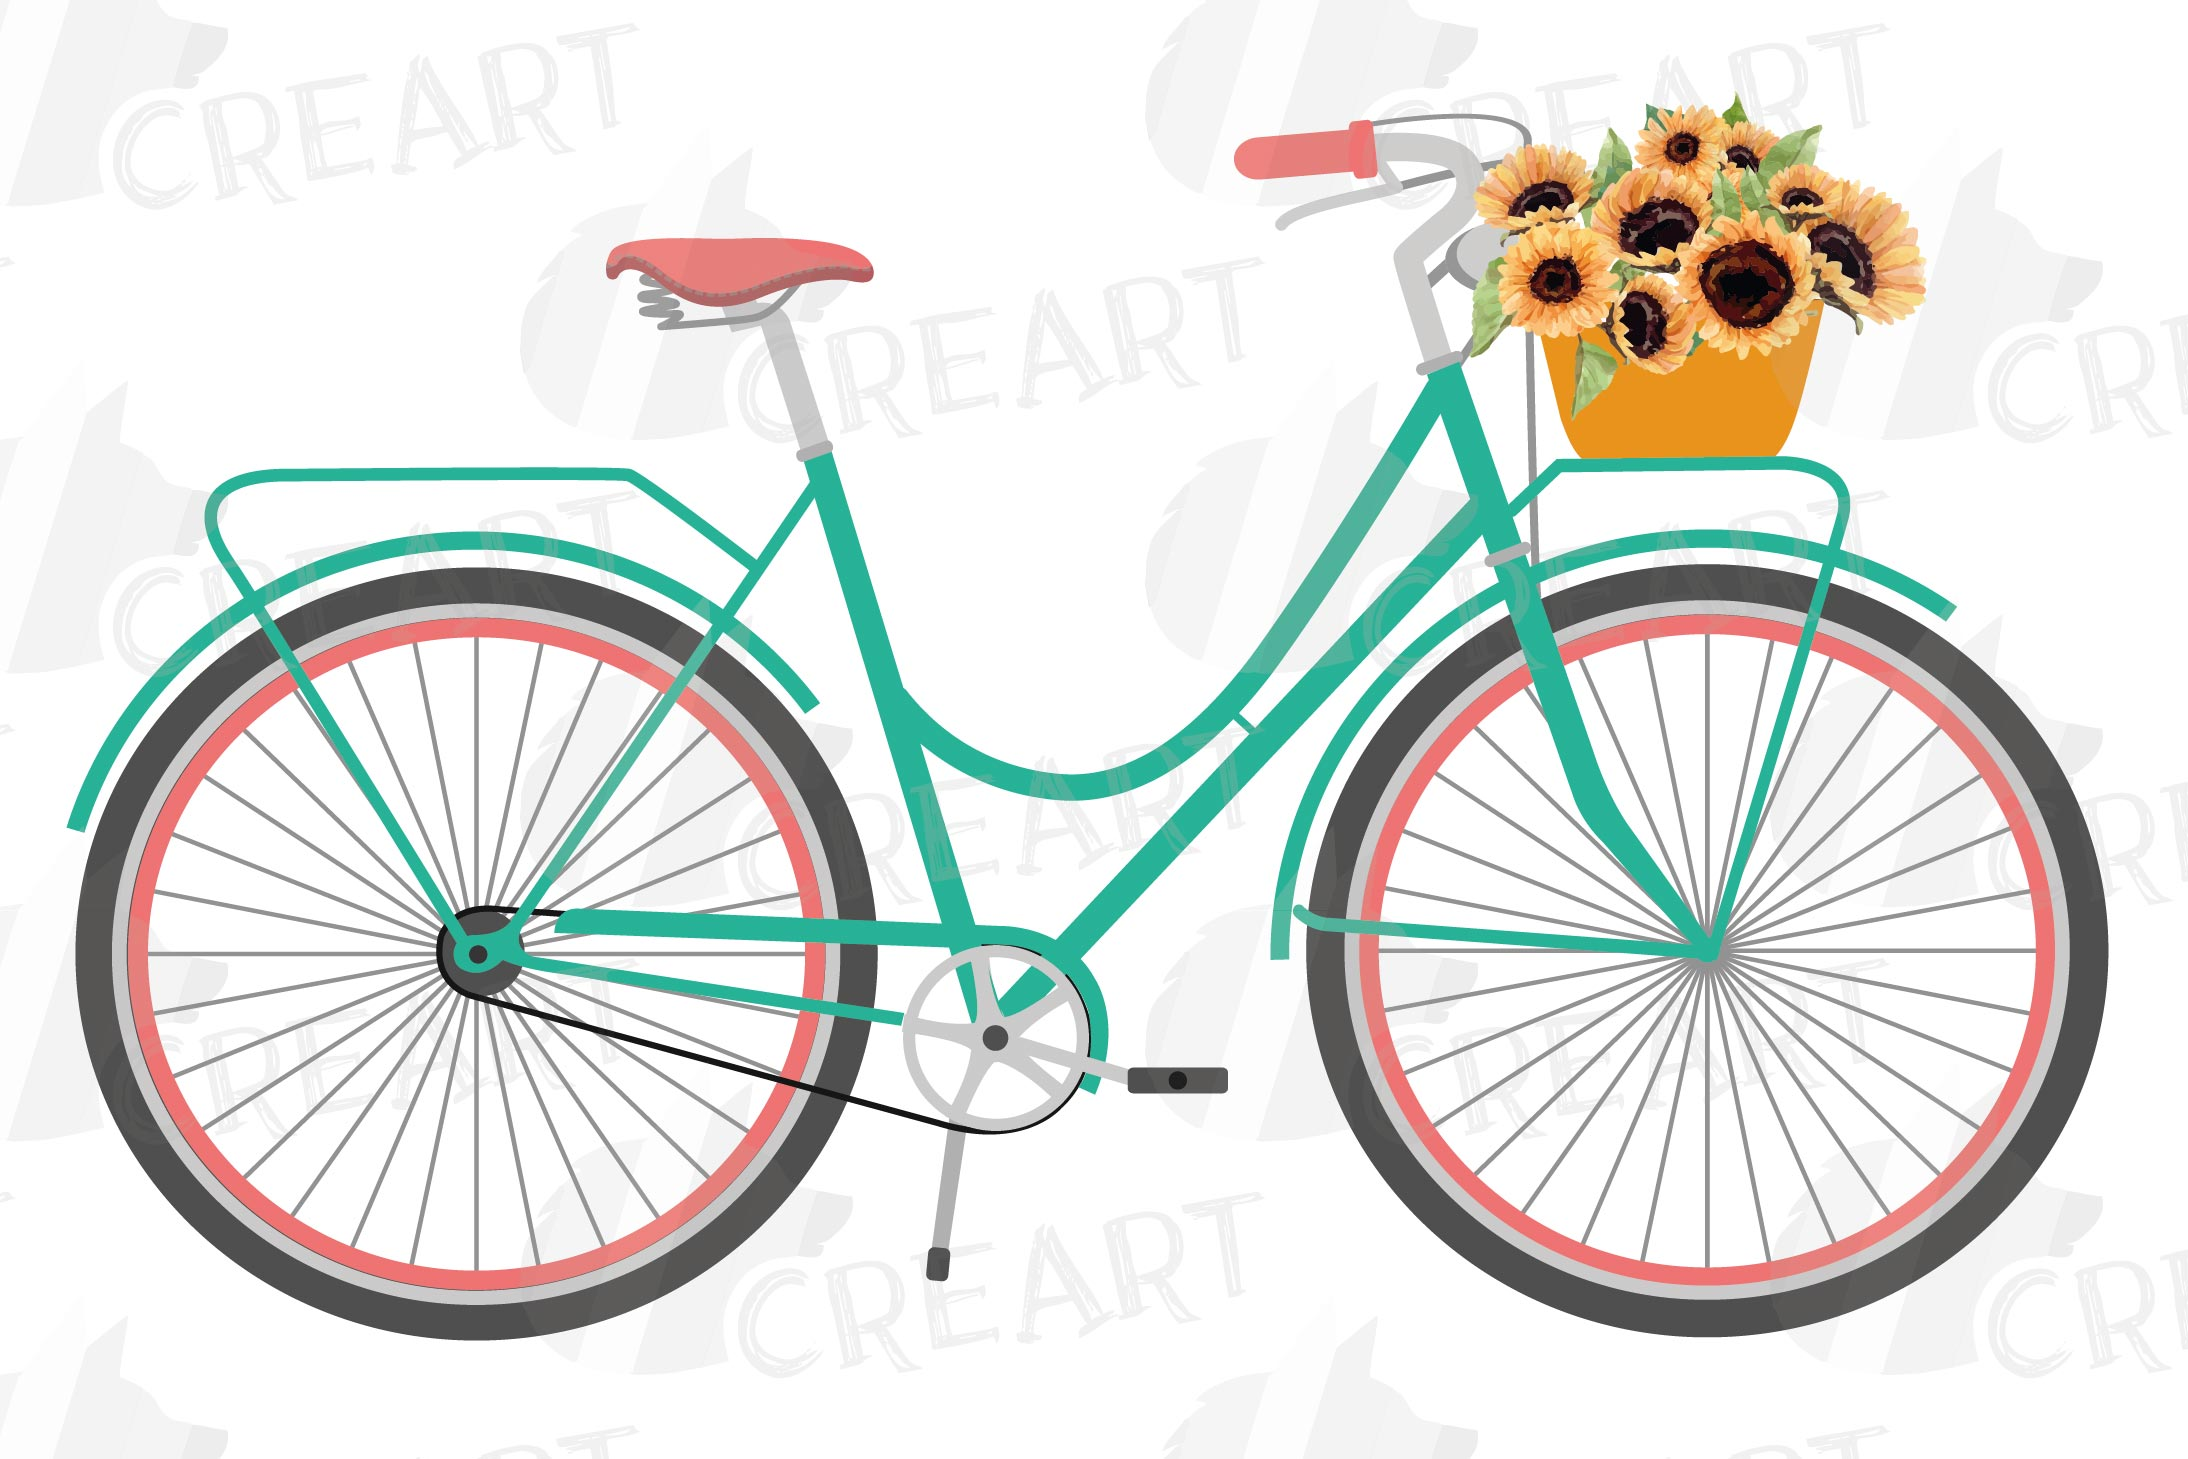 Sunflower bouquets bicycles clip art. Floral bikes decor png example image 7